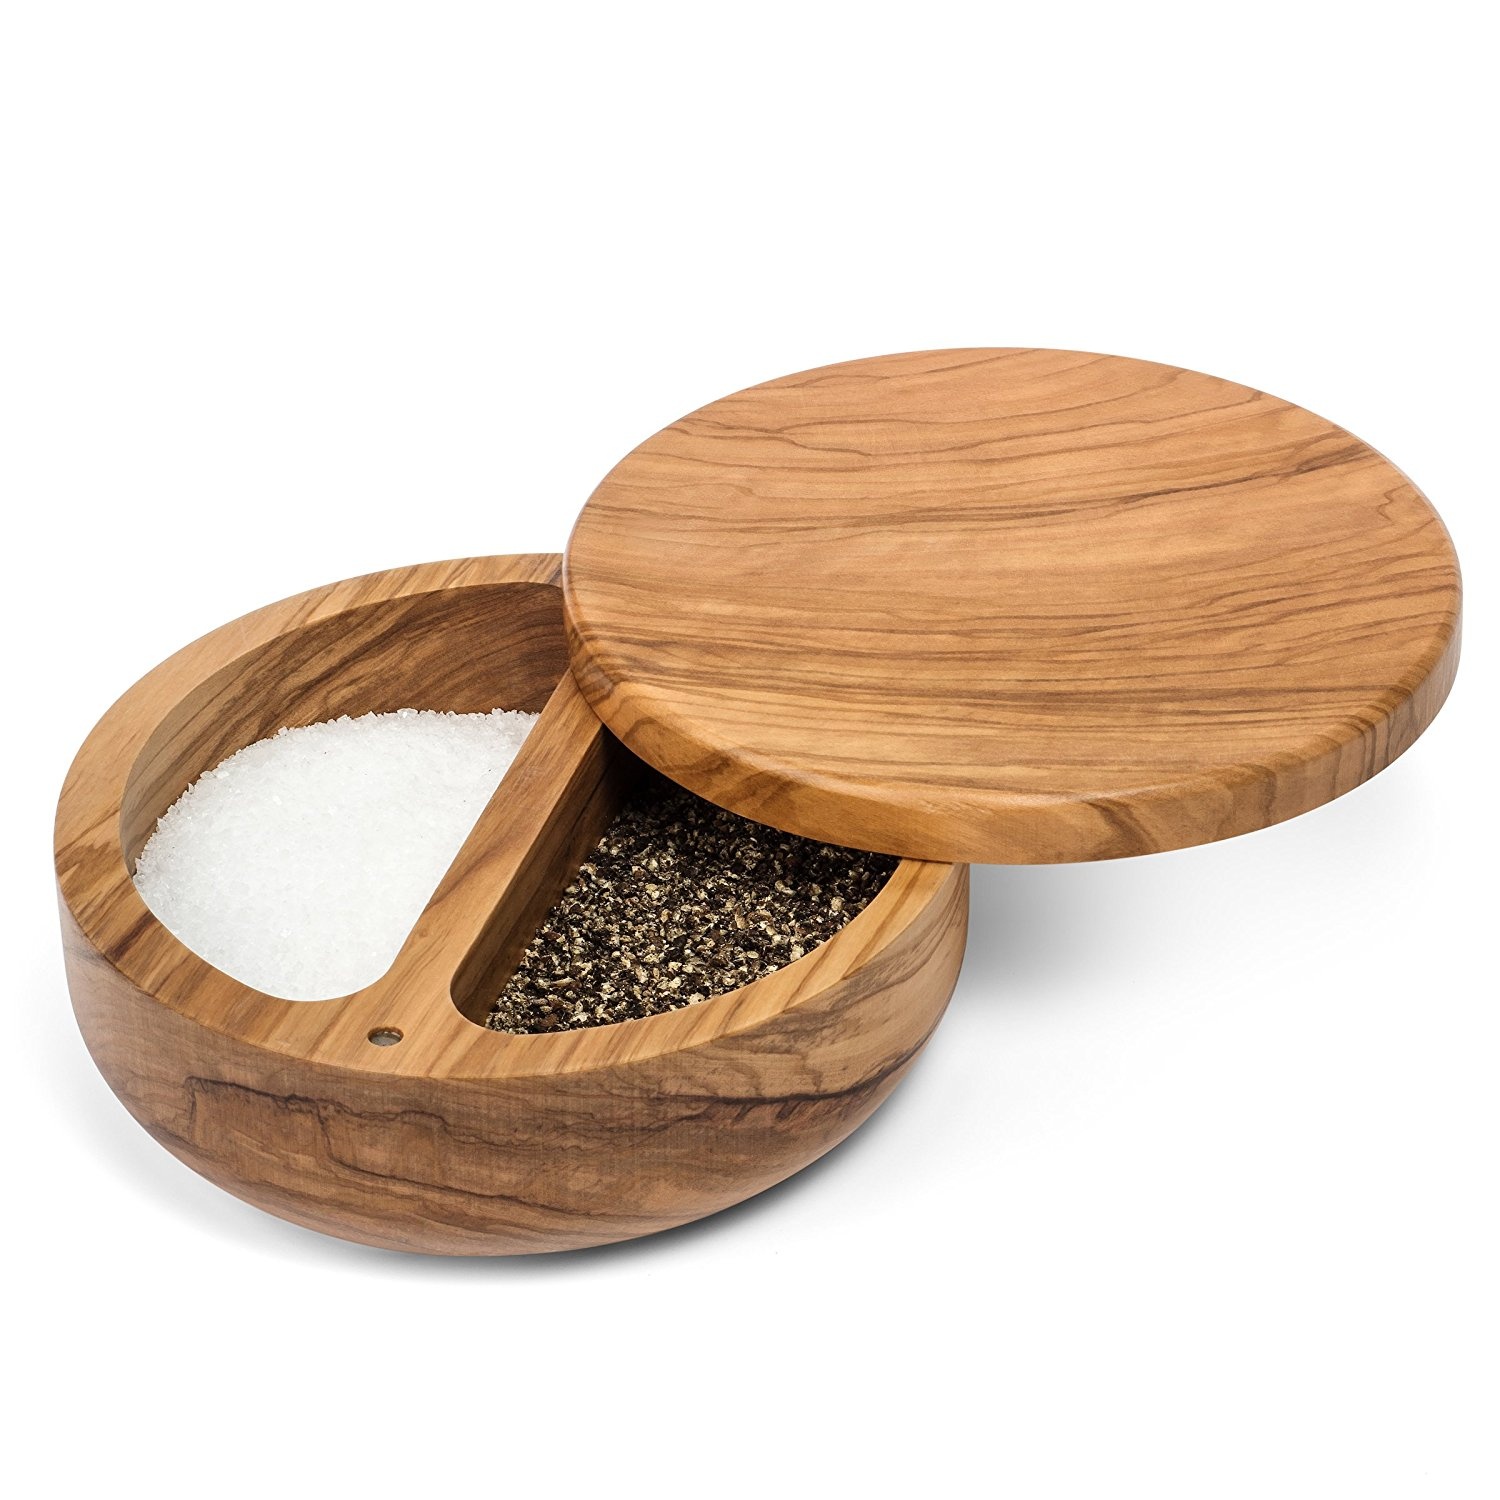 or salt cellars that also have a spot for pepper. You can find one that works for the way you cook and serve.